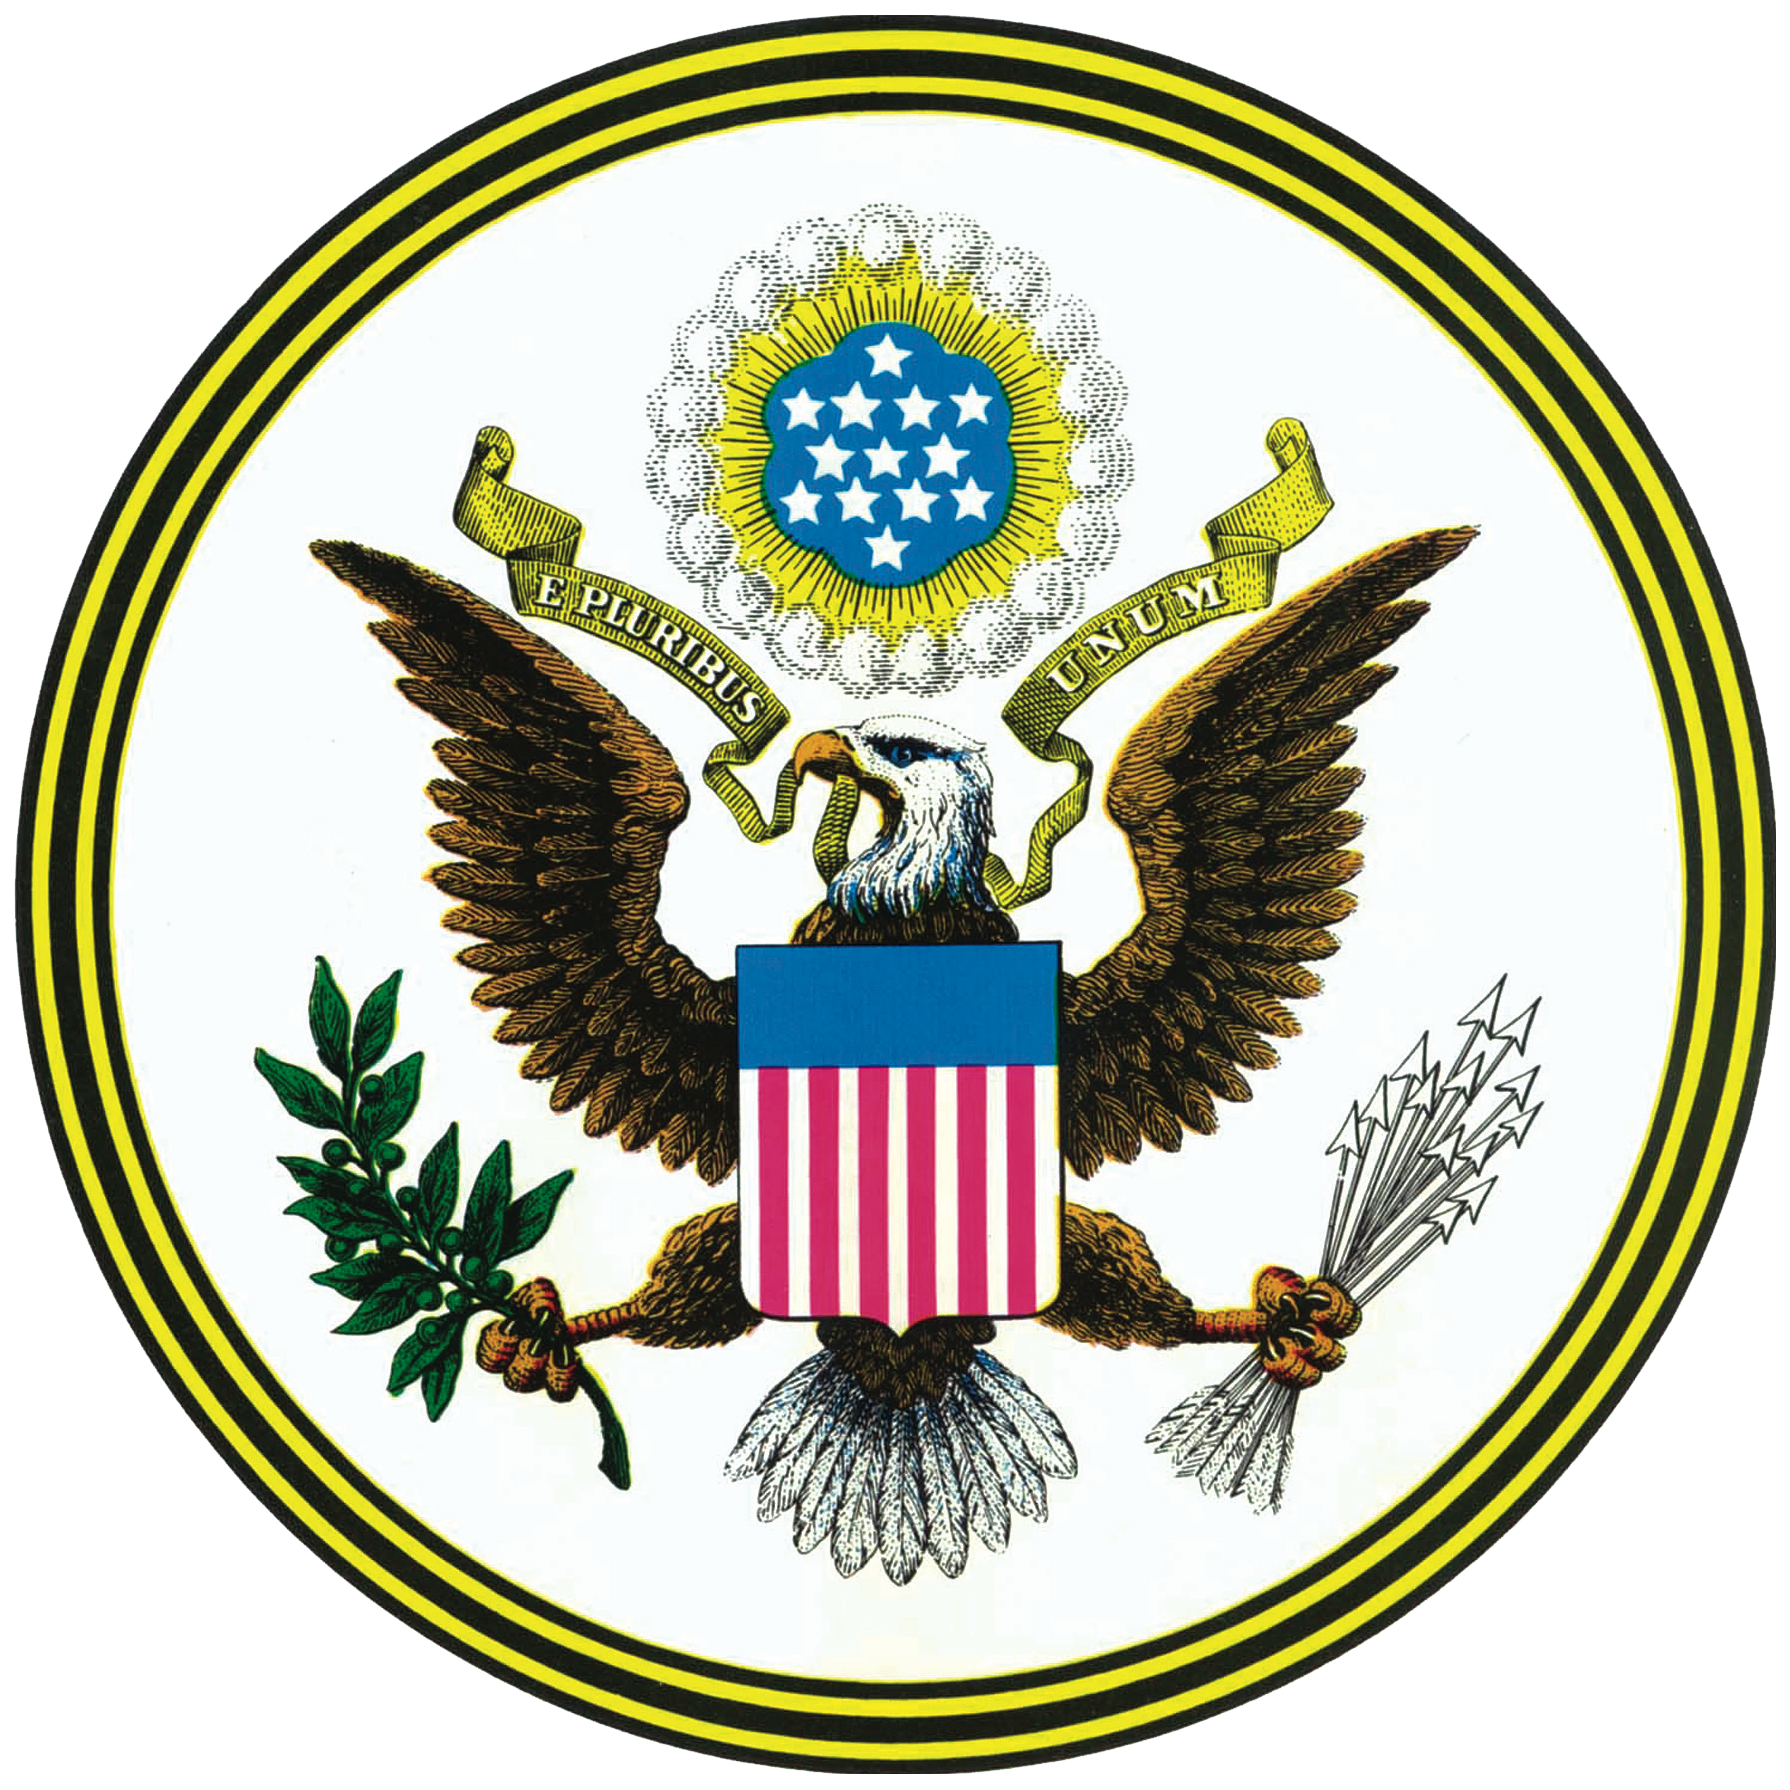 Us Army Symbol - ClipArt Best